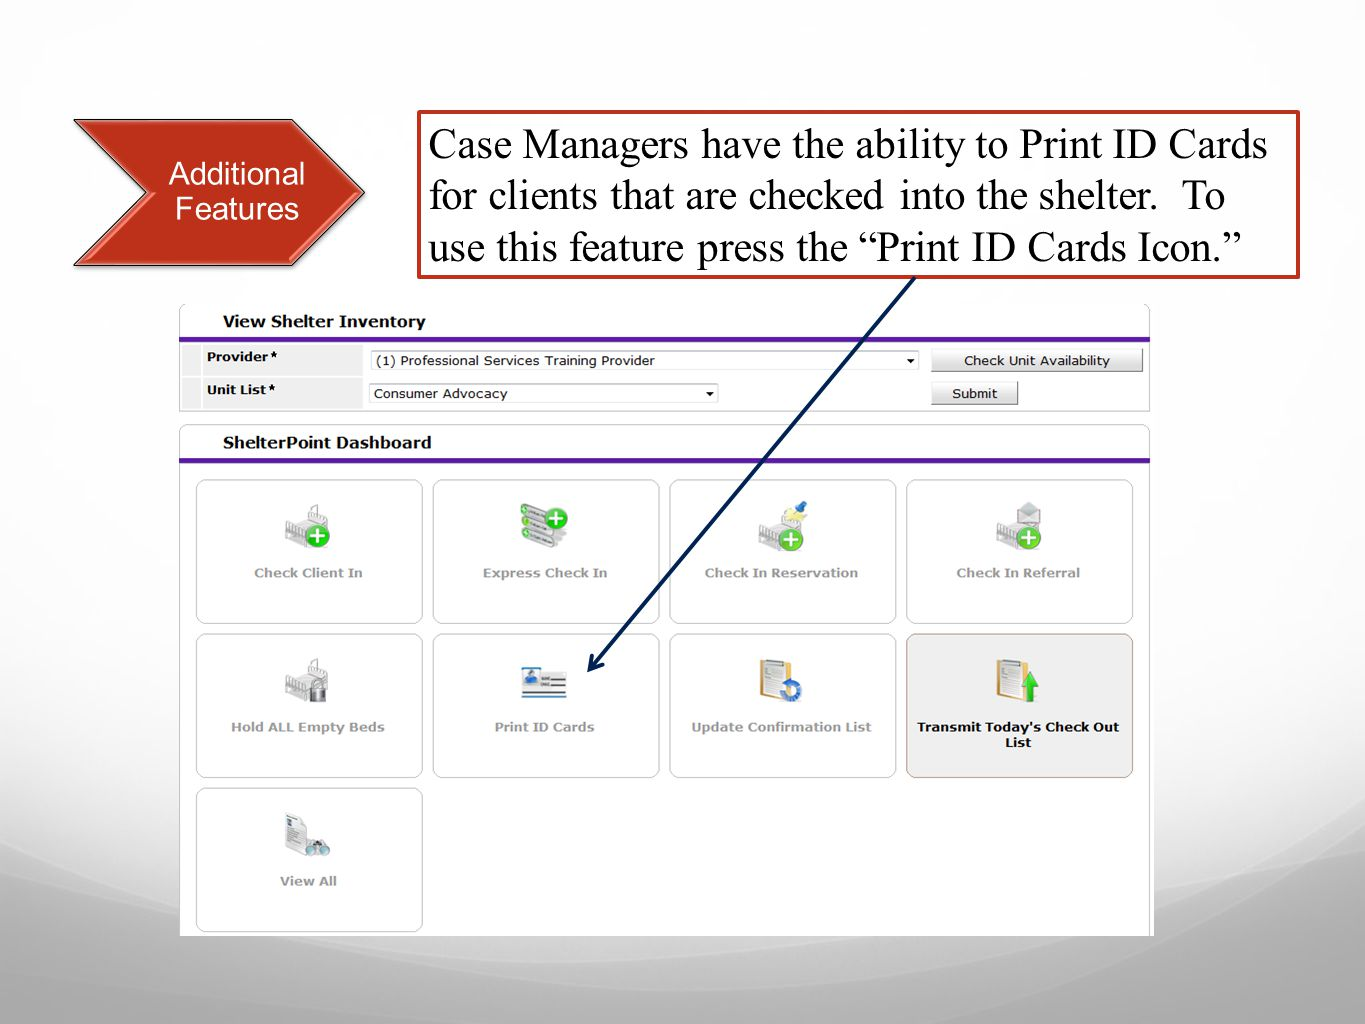 Additional Features Case Managers have the ability to Print ID Cards for clients that are checked into the shelter.